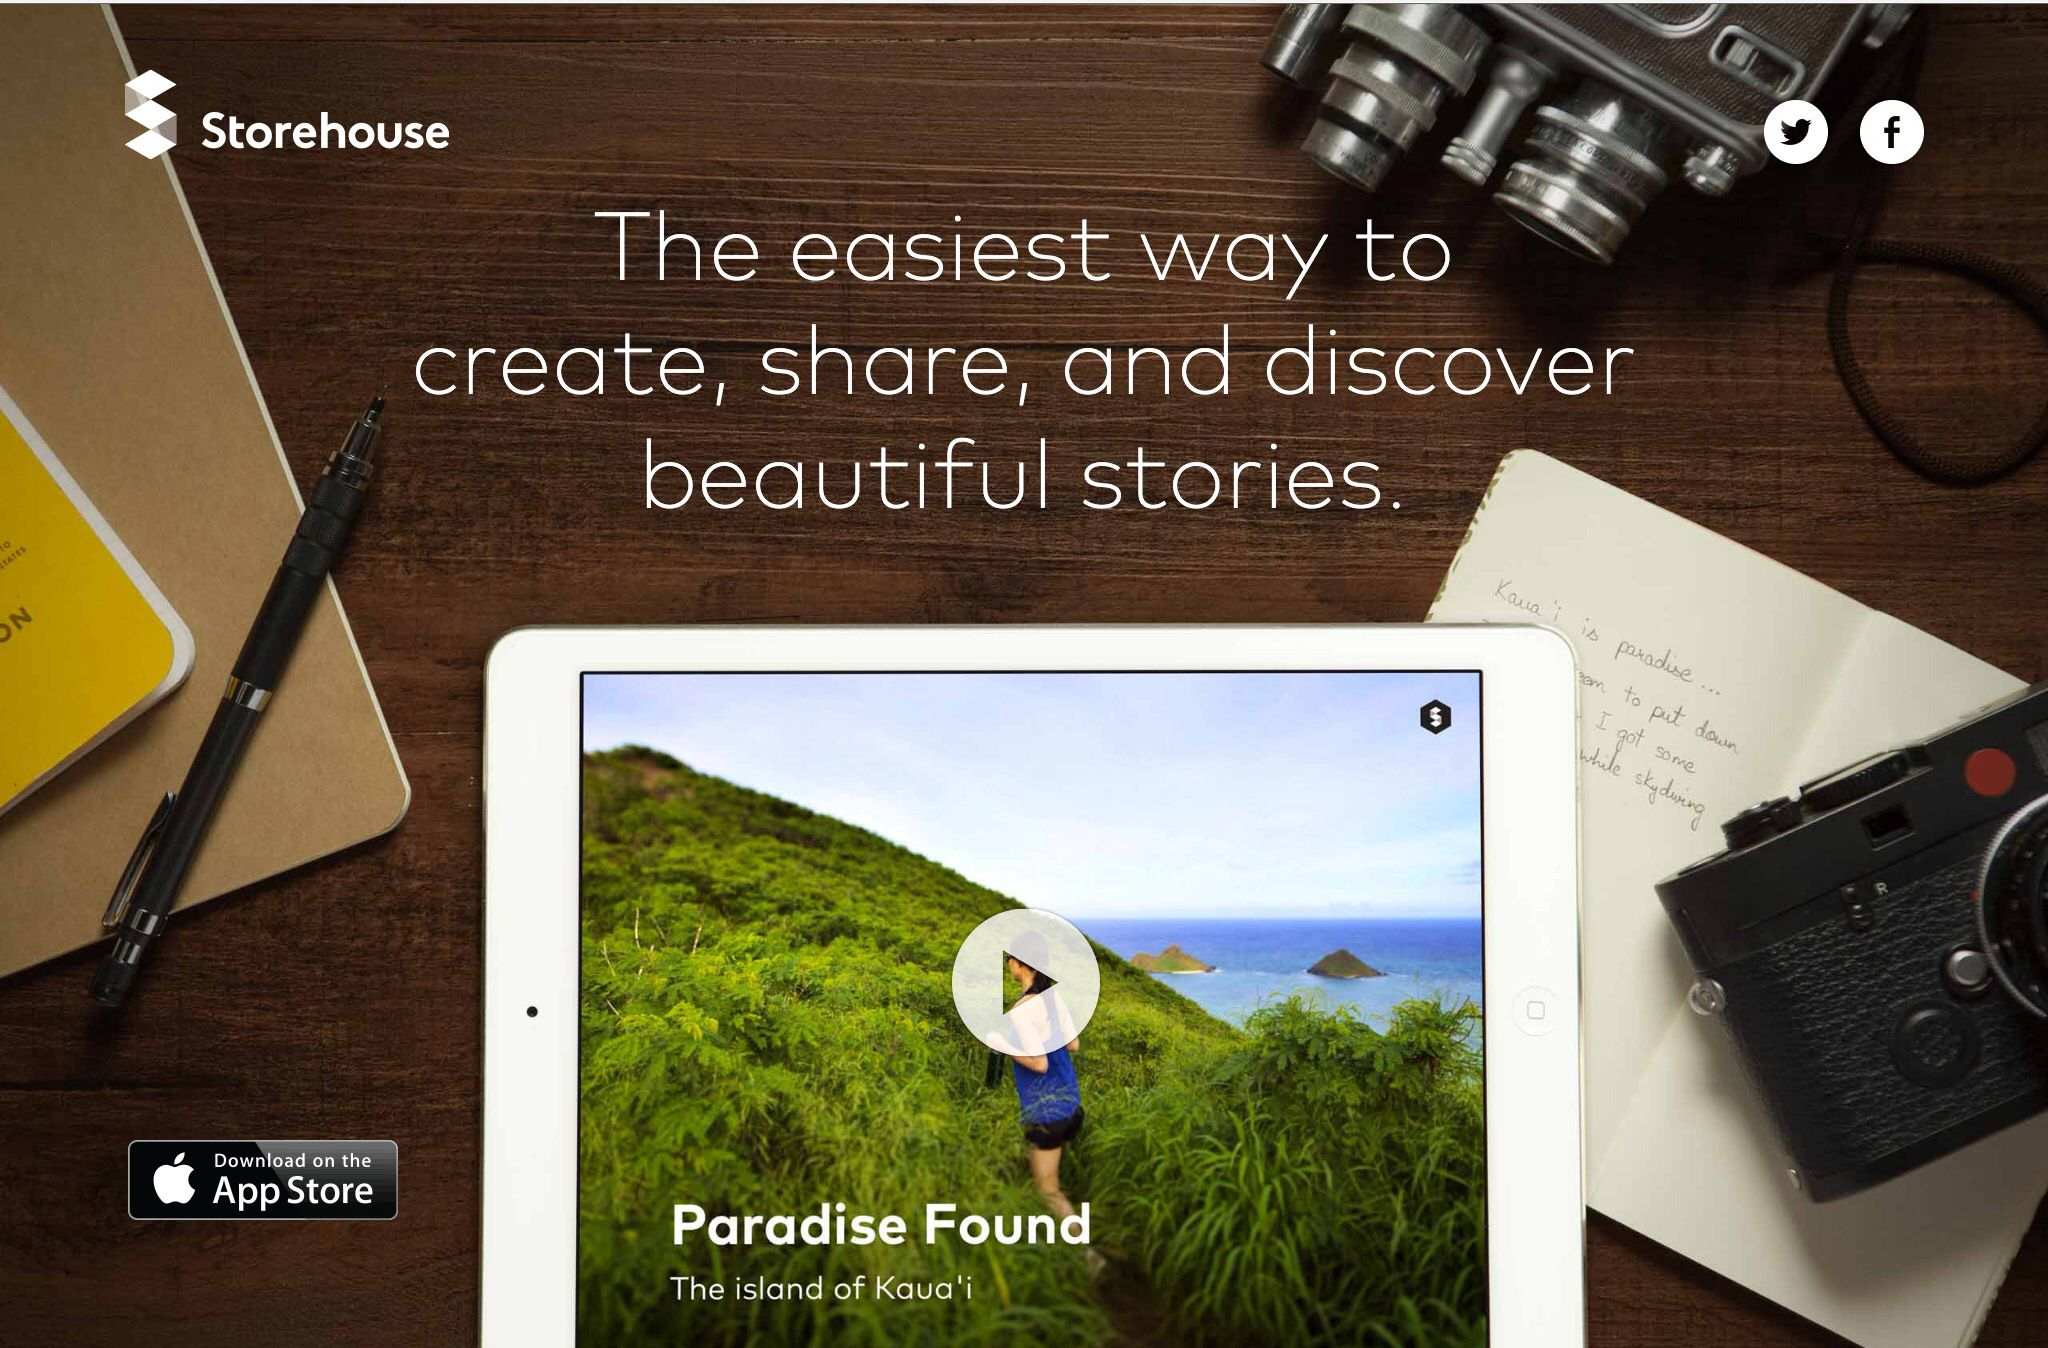 Storehouse: The easiest way to create, share, and discover beautiful stories. Download the app: https://www.storehouse.co